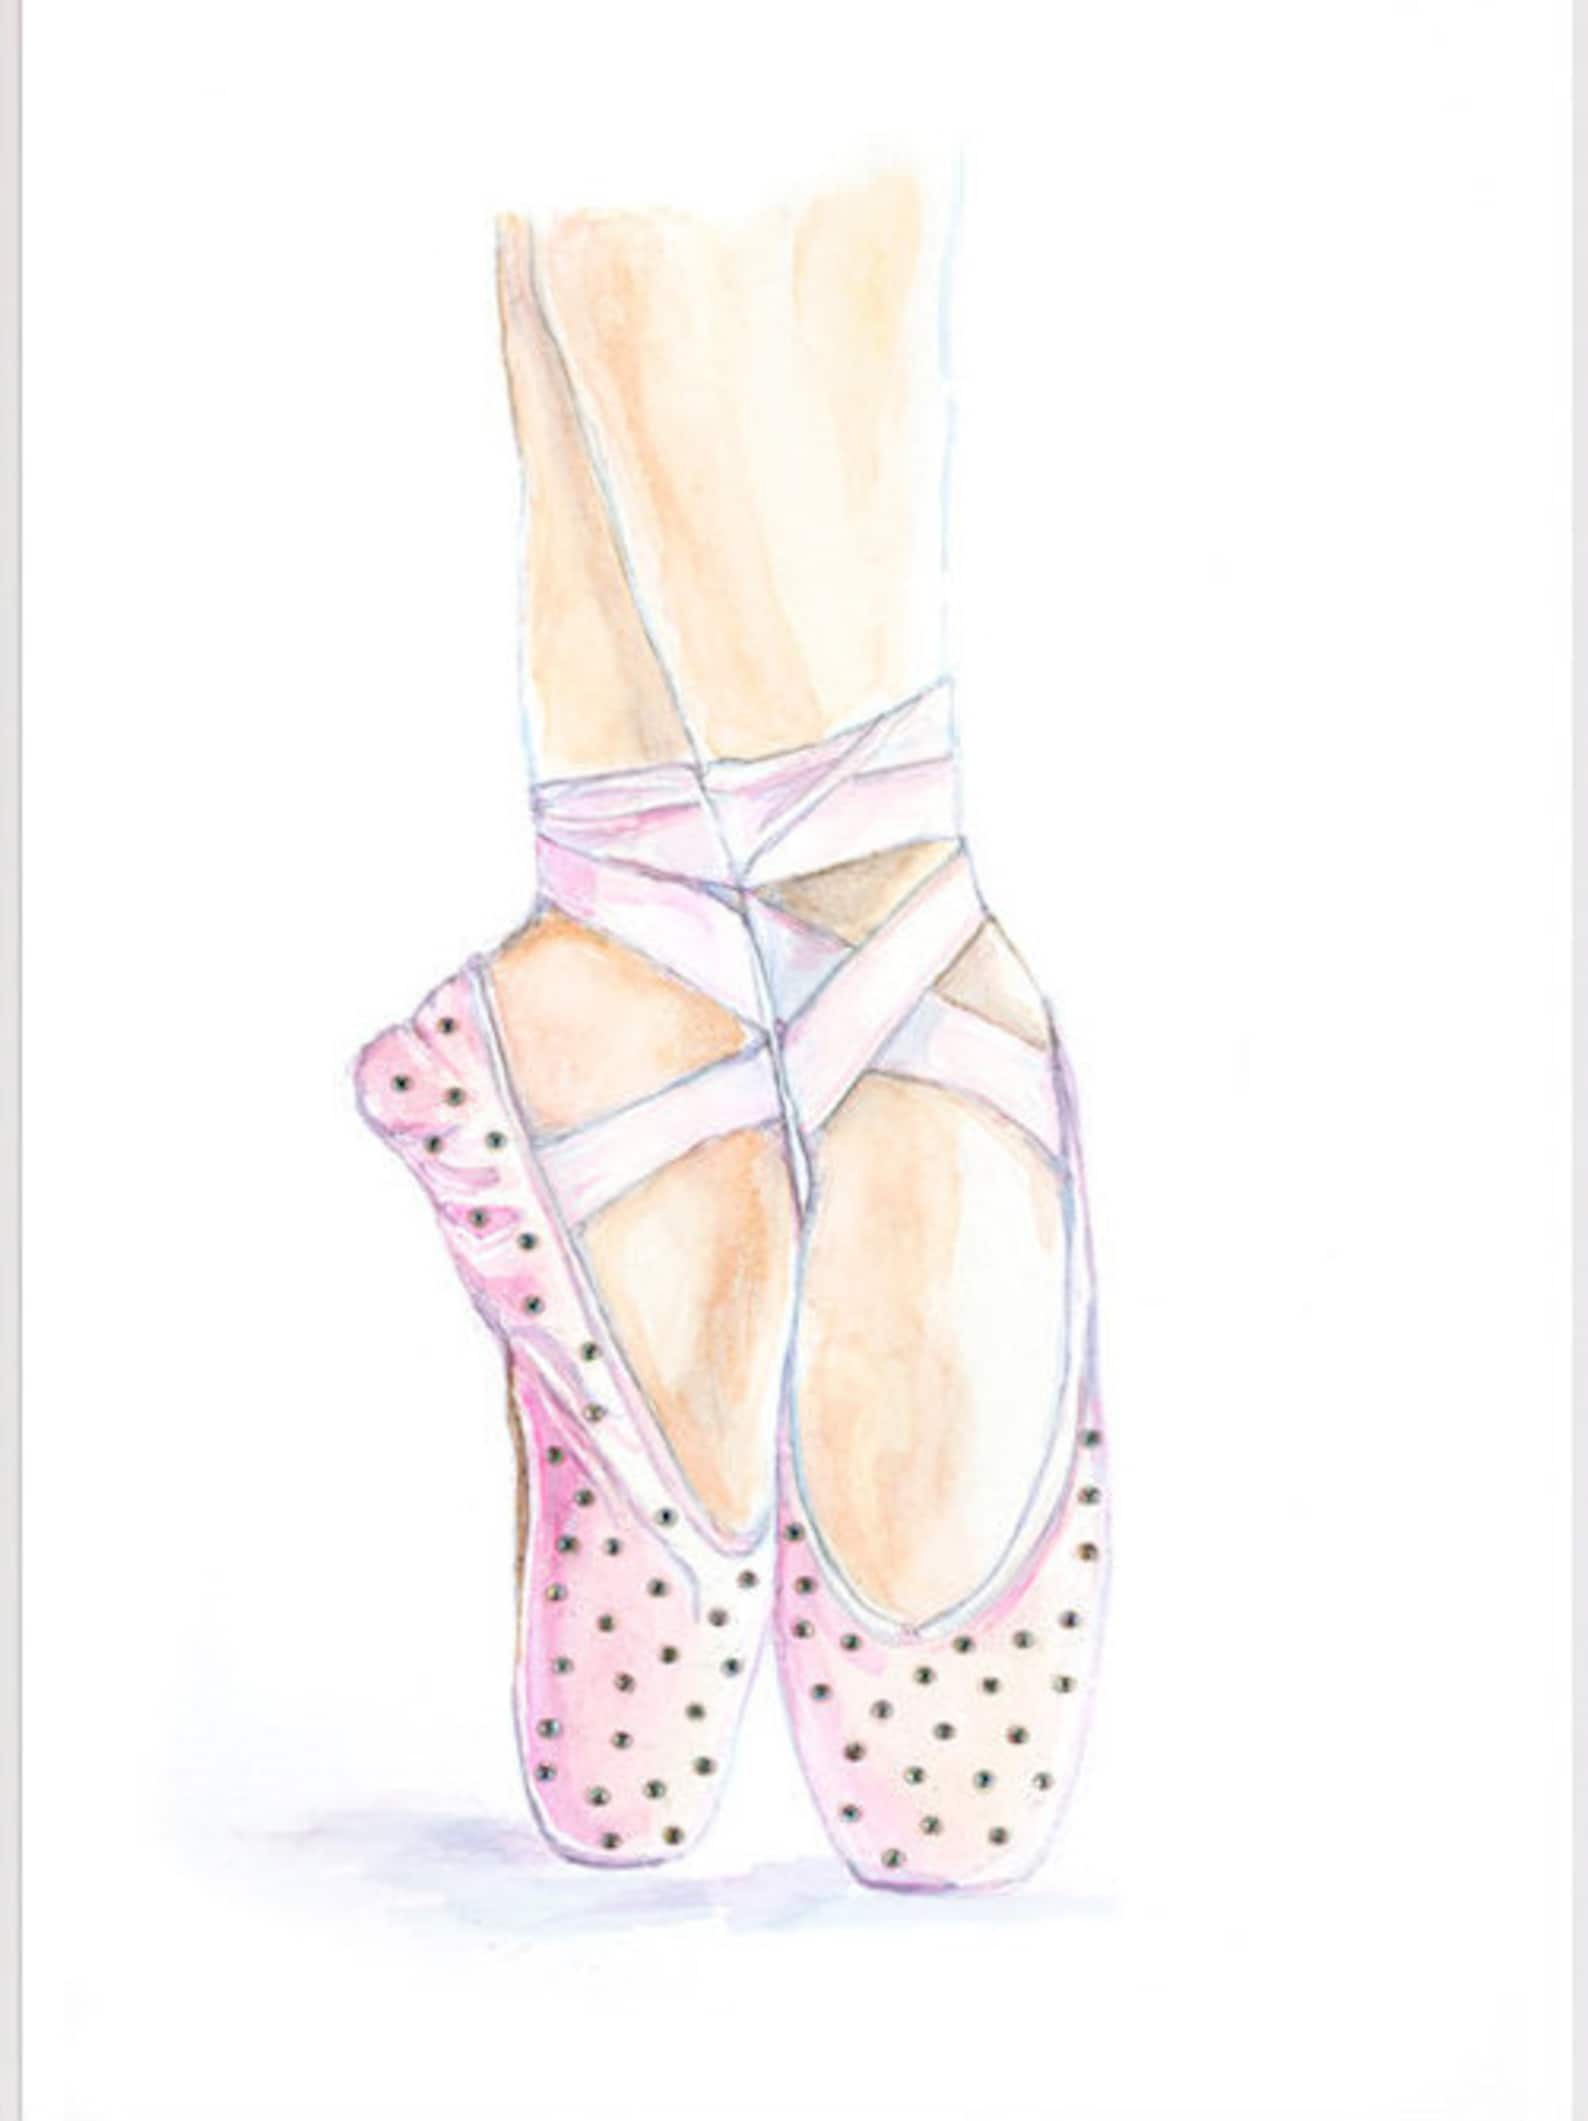 ballet shoes swarovski crystals embellished shoes illustration pointe shoes watercolor print ballet slippers ballerina art dance